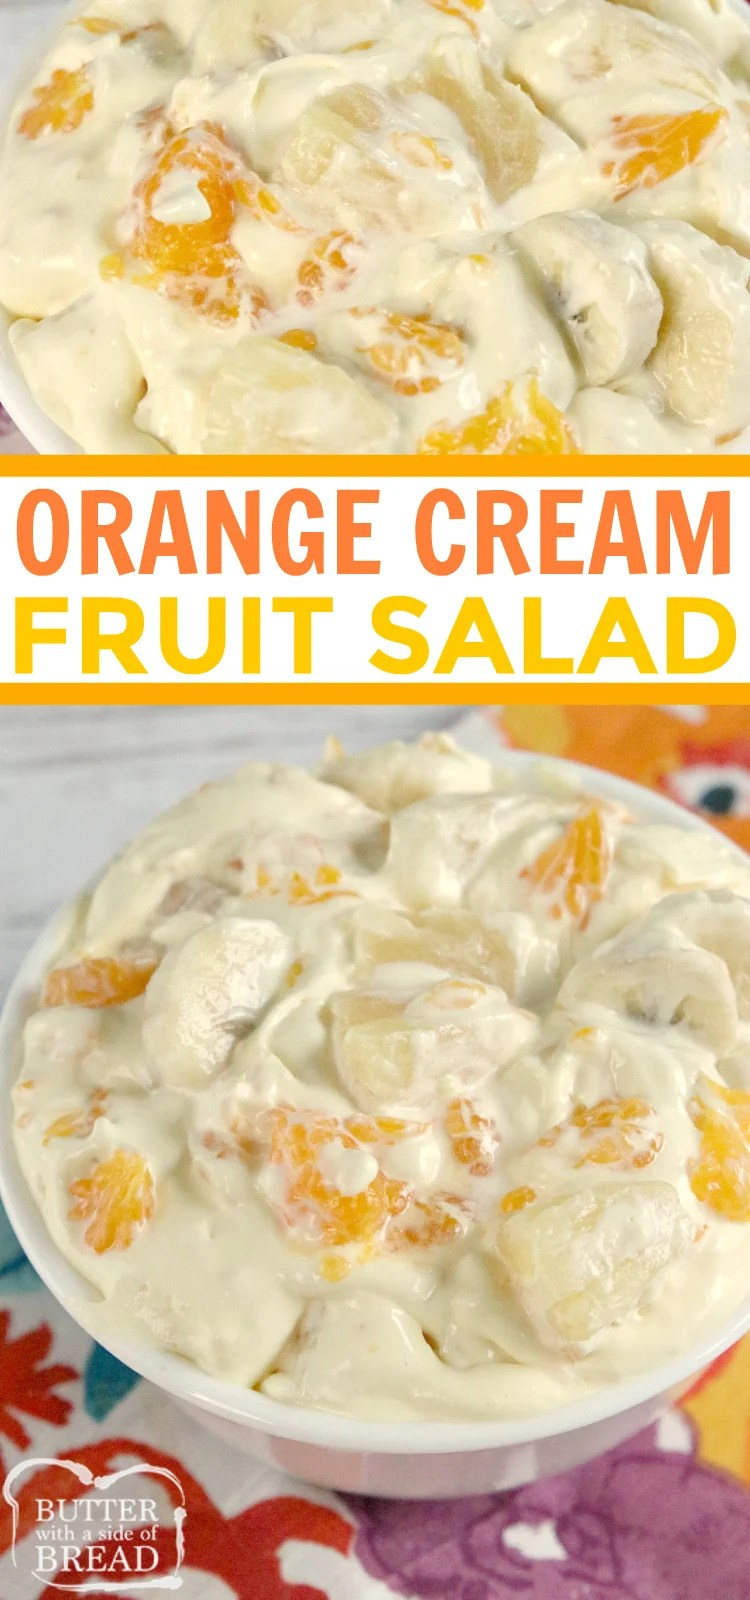 Orange Cream Fruit Salad is a delicious fruit salad filled with oranges, pineapple and bananas with a sweet orange cream mixed in! Perfect to go alongside Easter dinner!